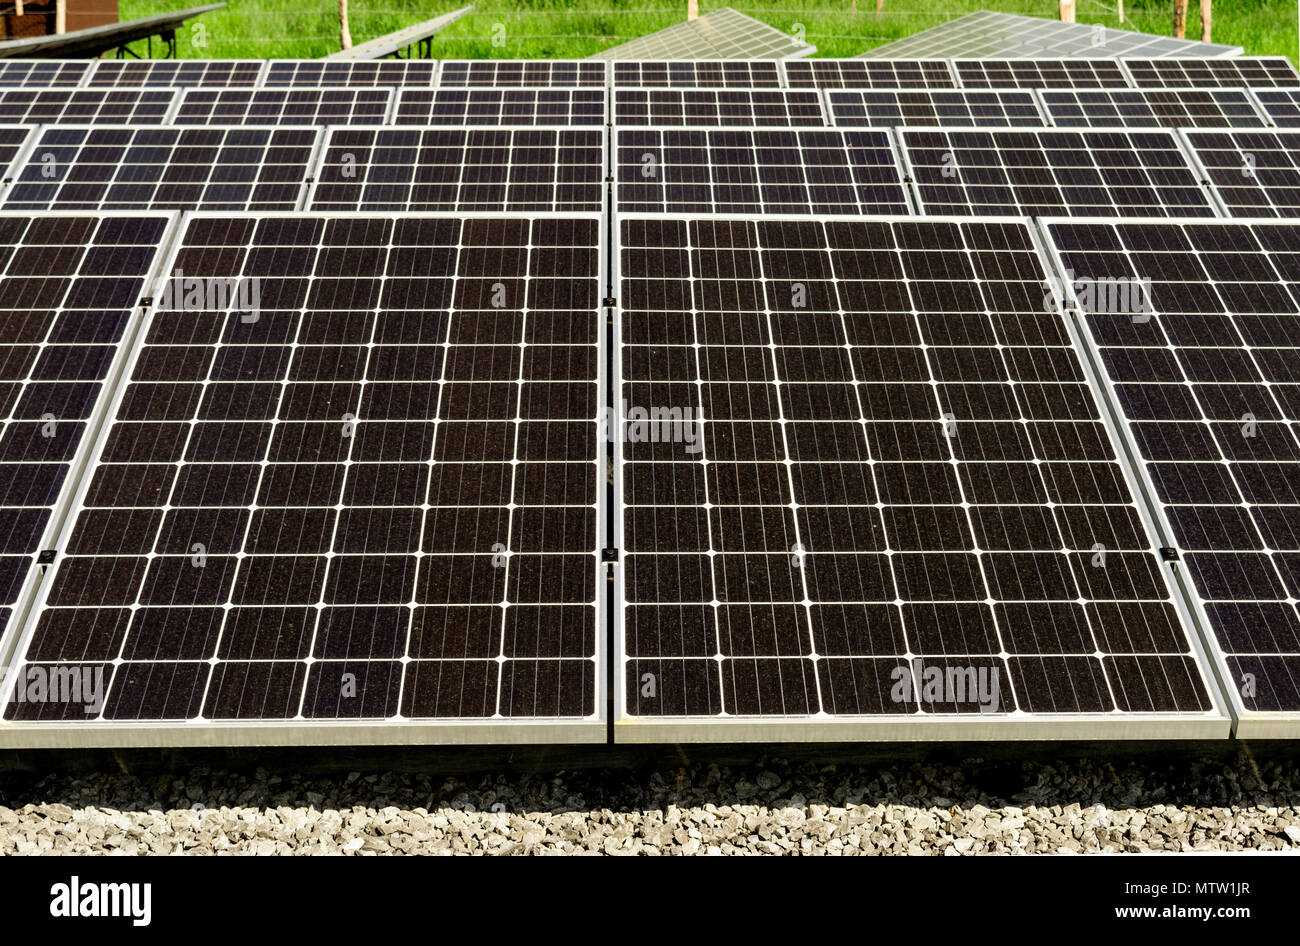 Close-up of large solar panels with focus on the foreground. Cades Cove Tennessee. - Stock Image